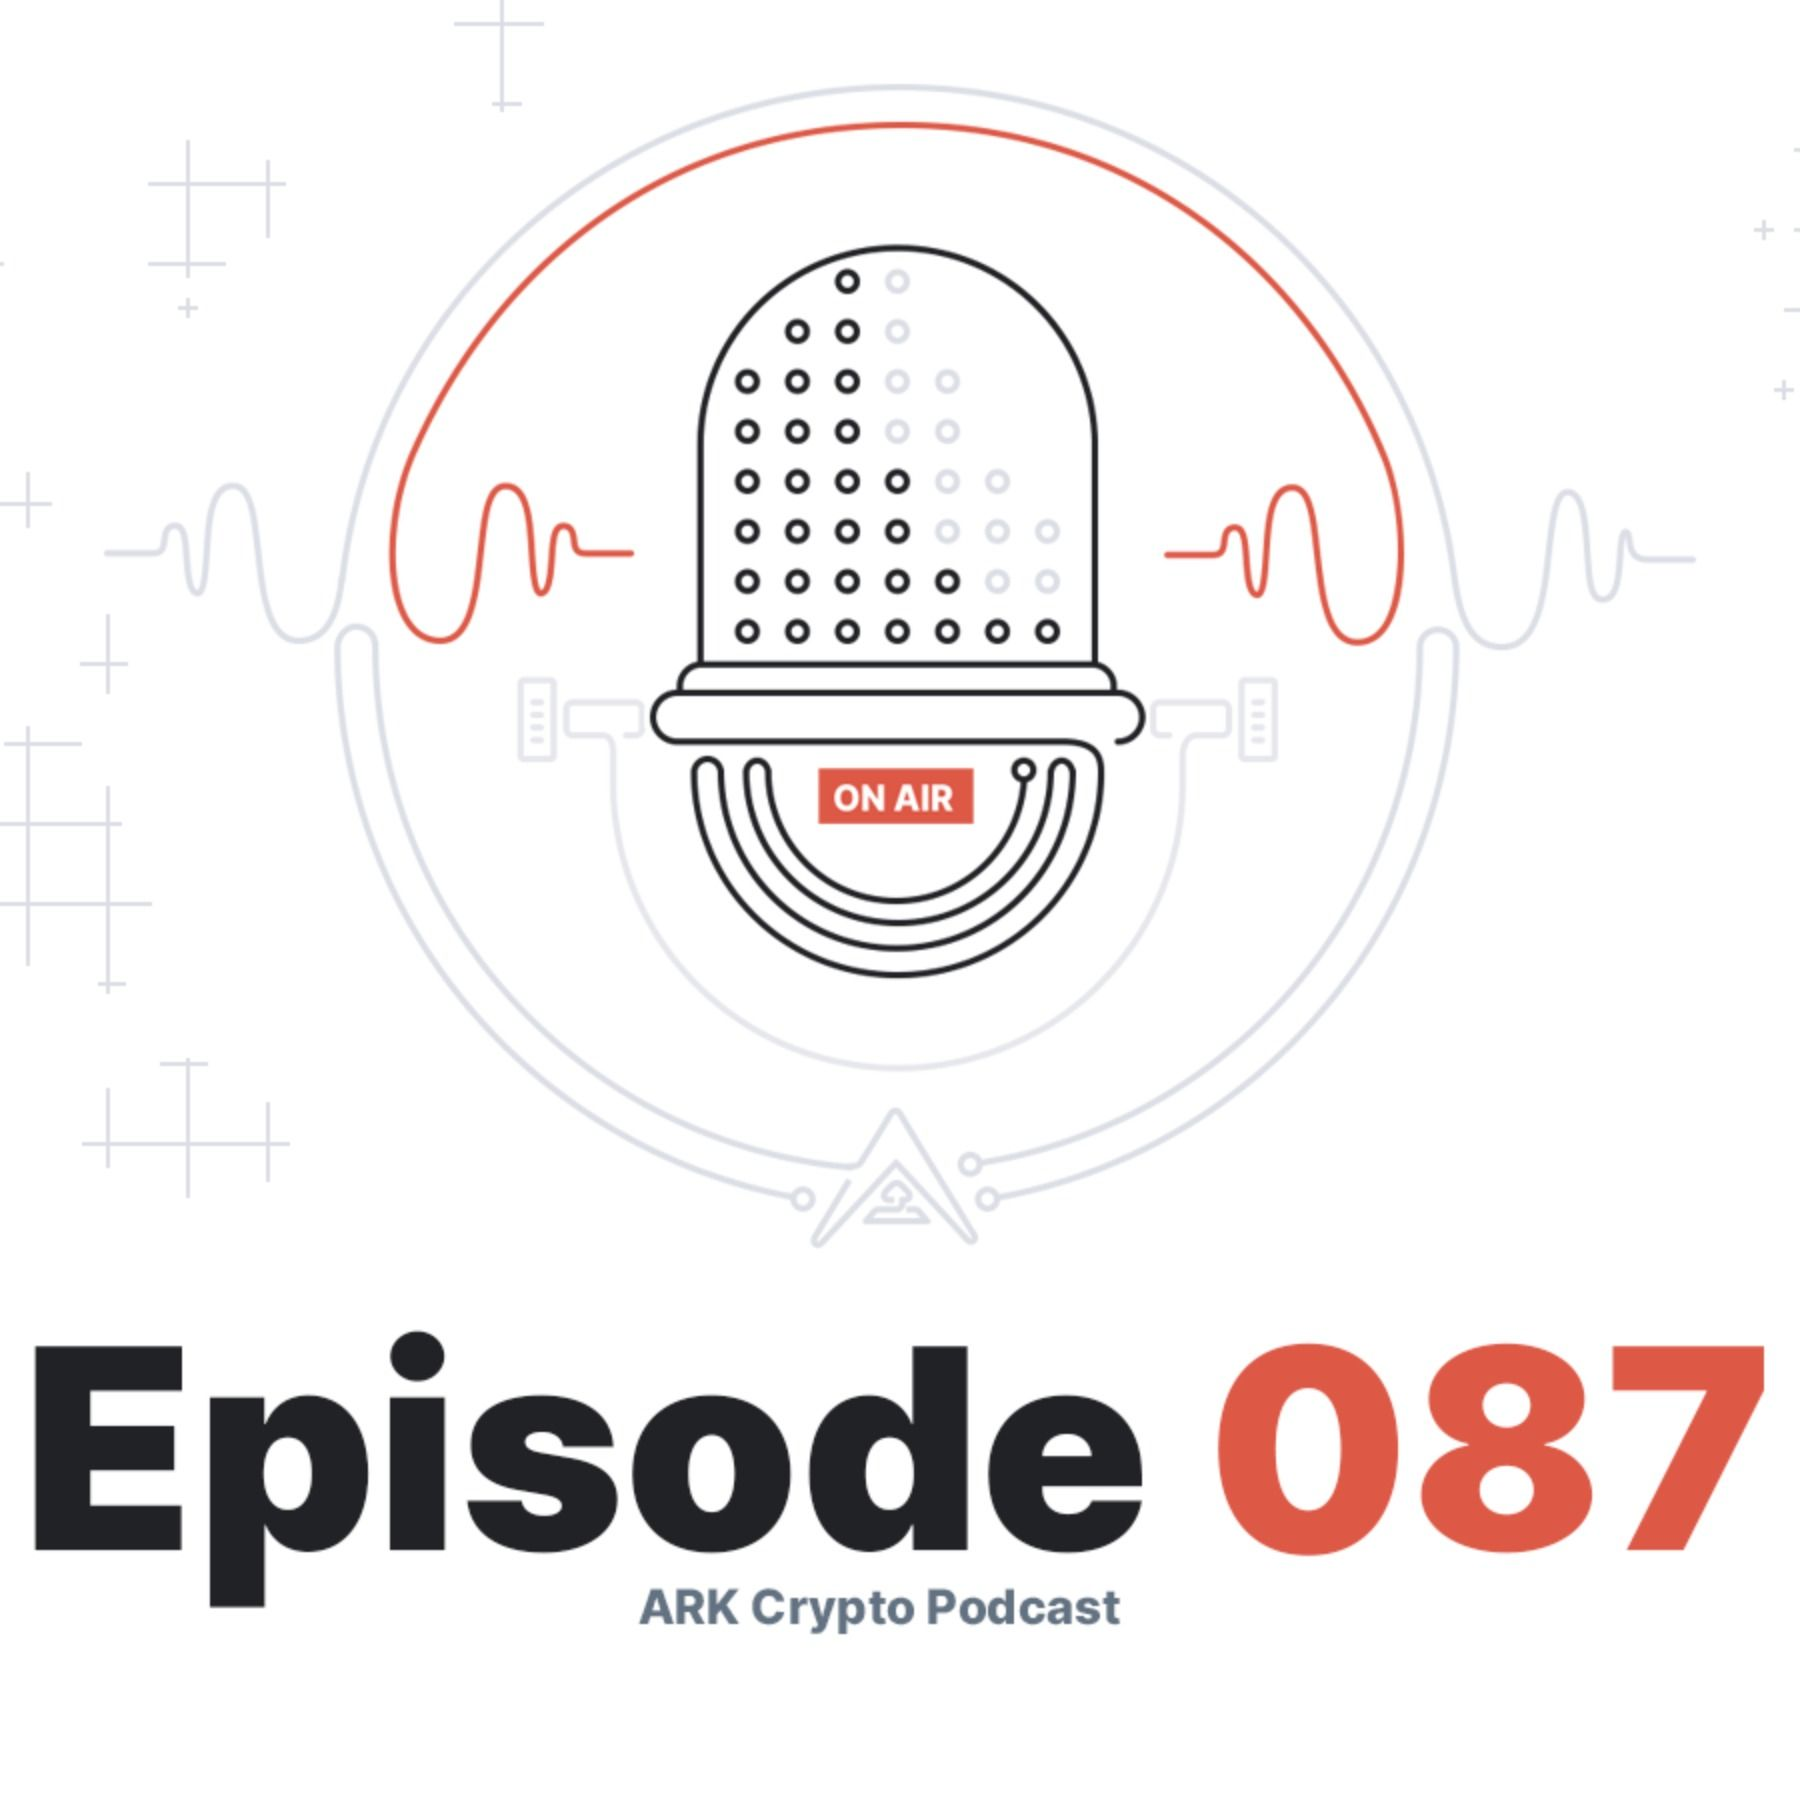 ARK.io Monthly Update July 2020 - ARK Crypto Podcast #087